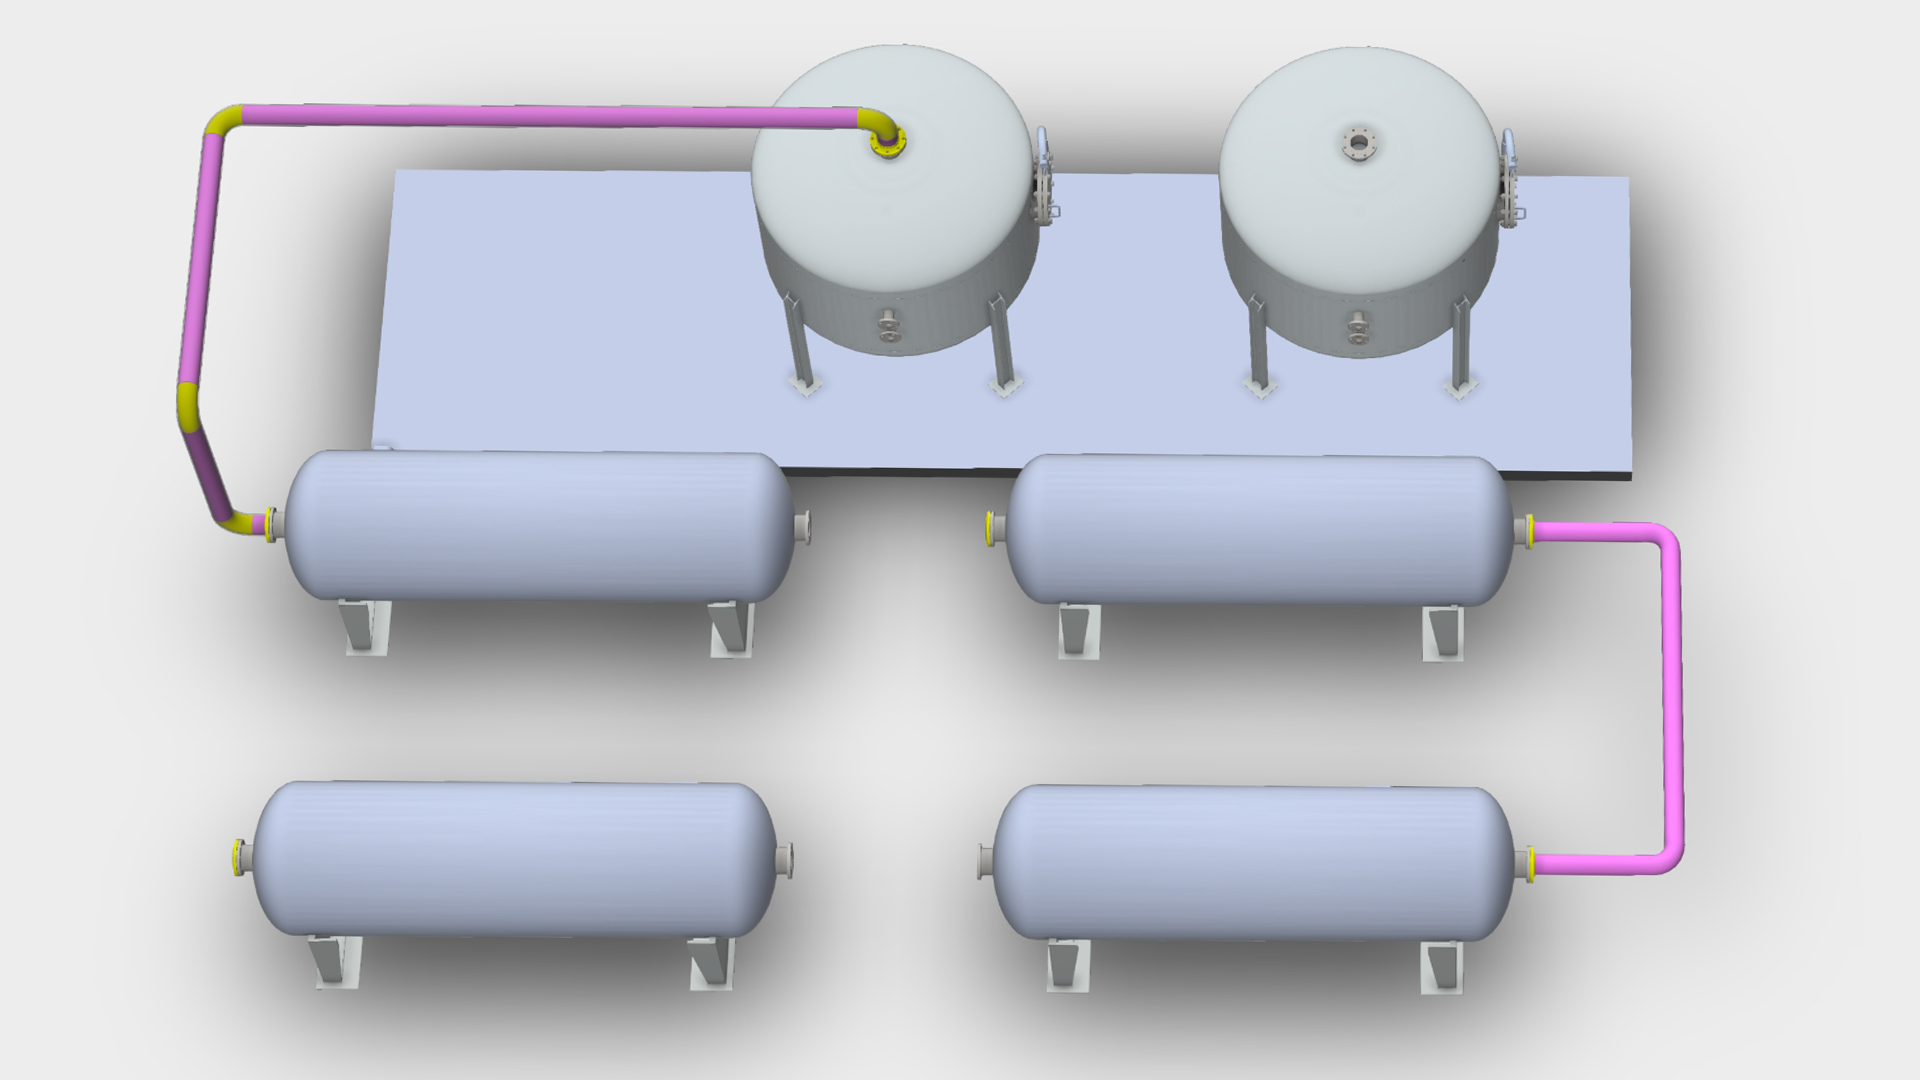 SOLIDWORKS: Piping and Routing